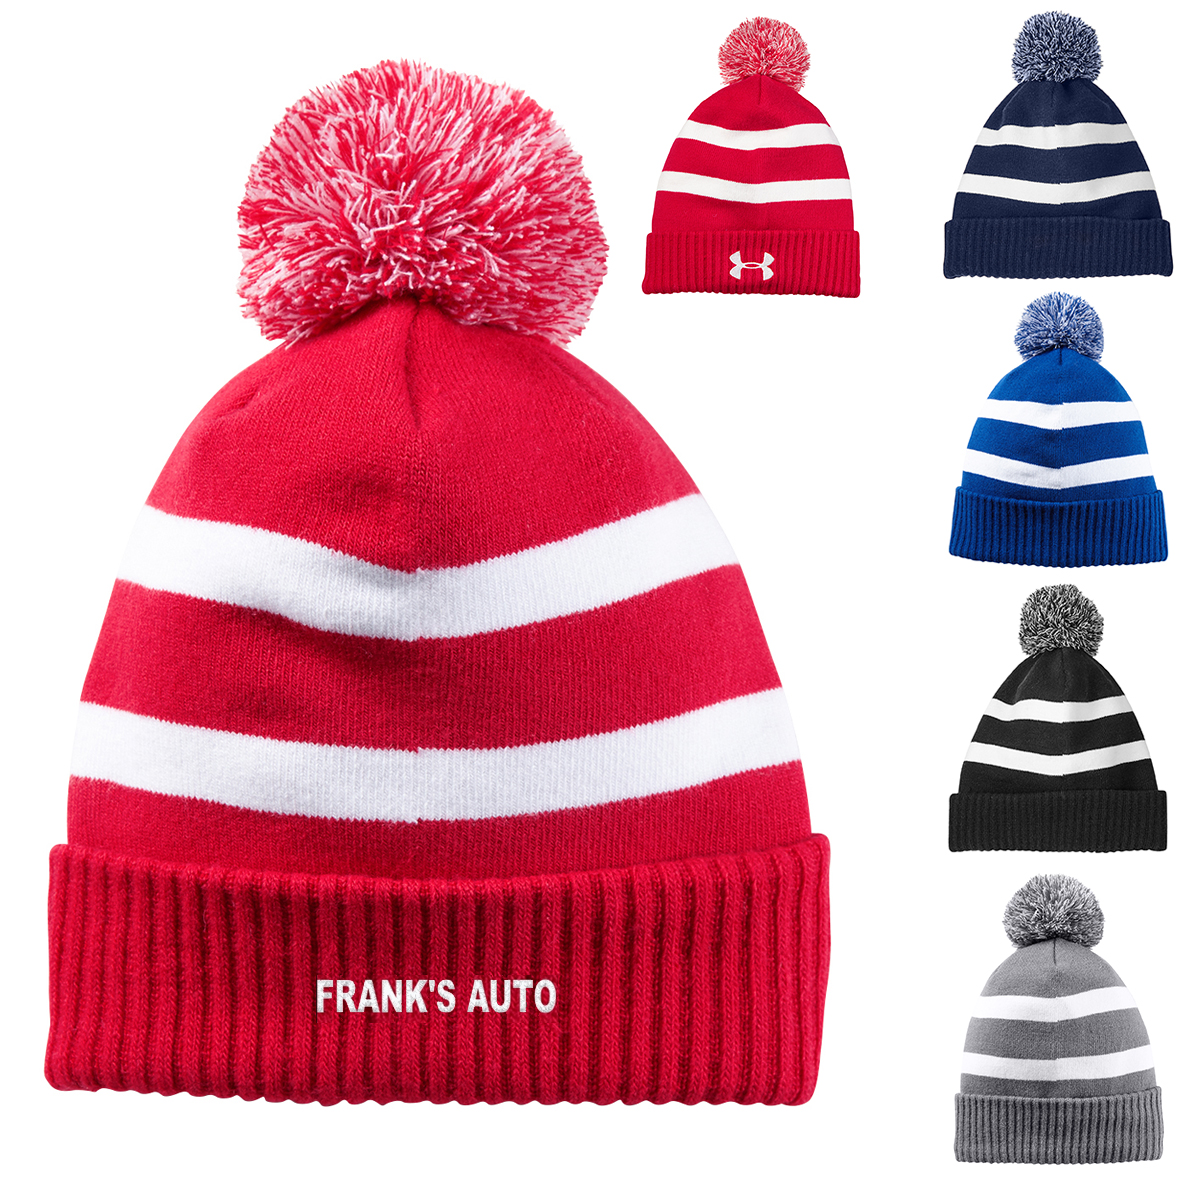 Promotioinal Under Armour Pom Beanie c37f32a3183